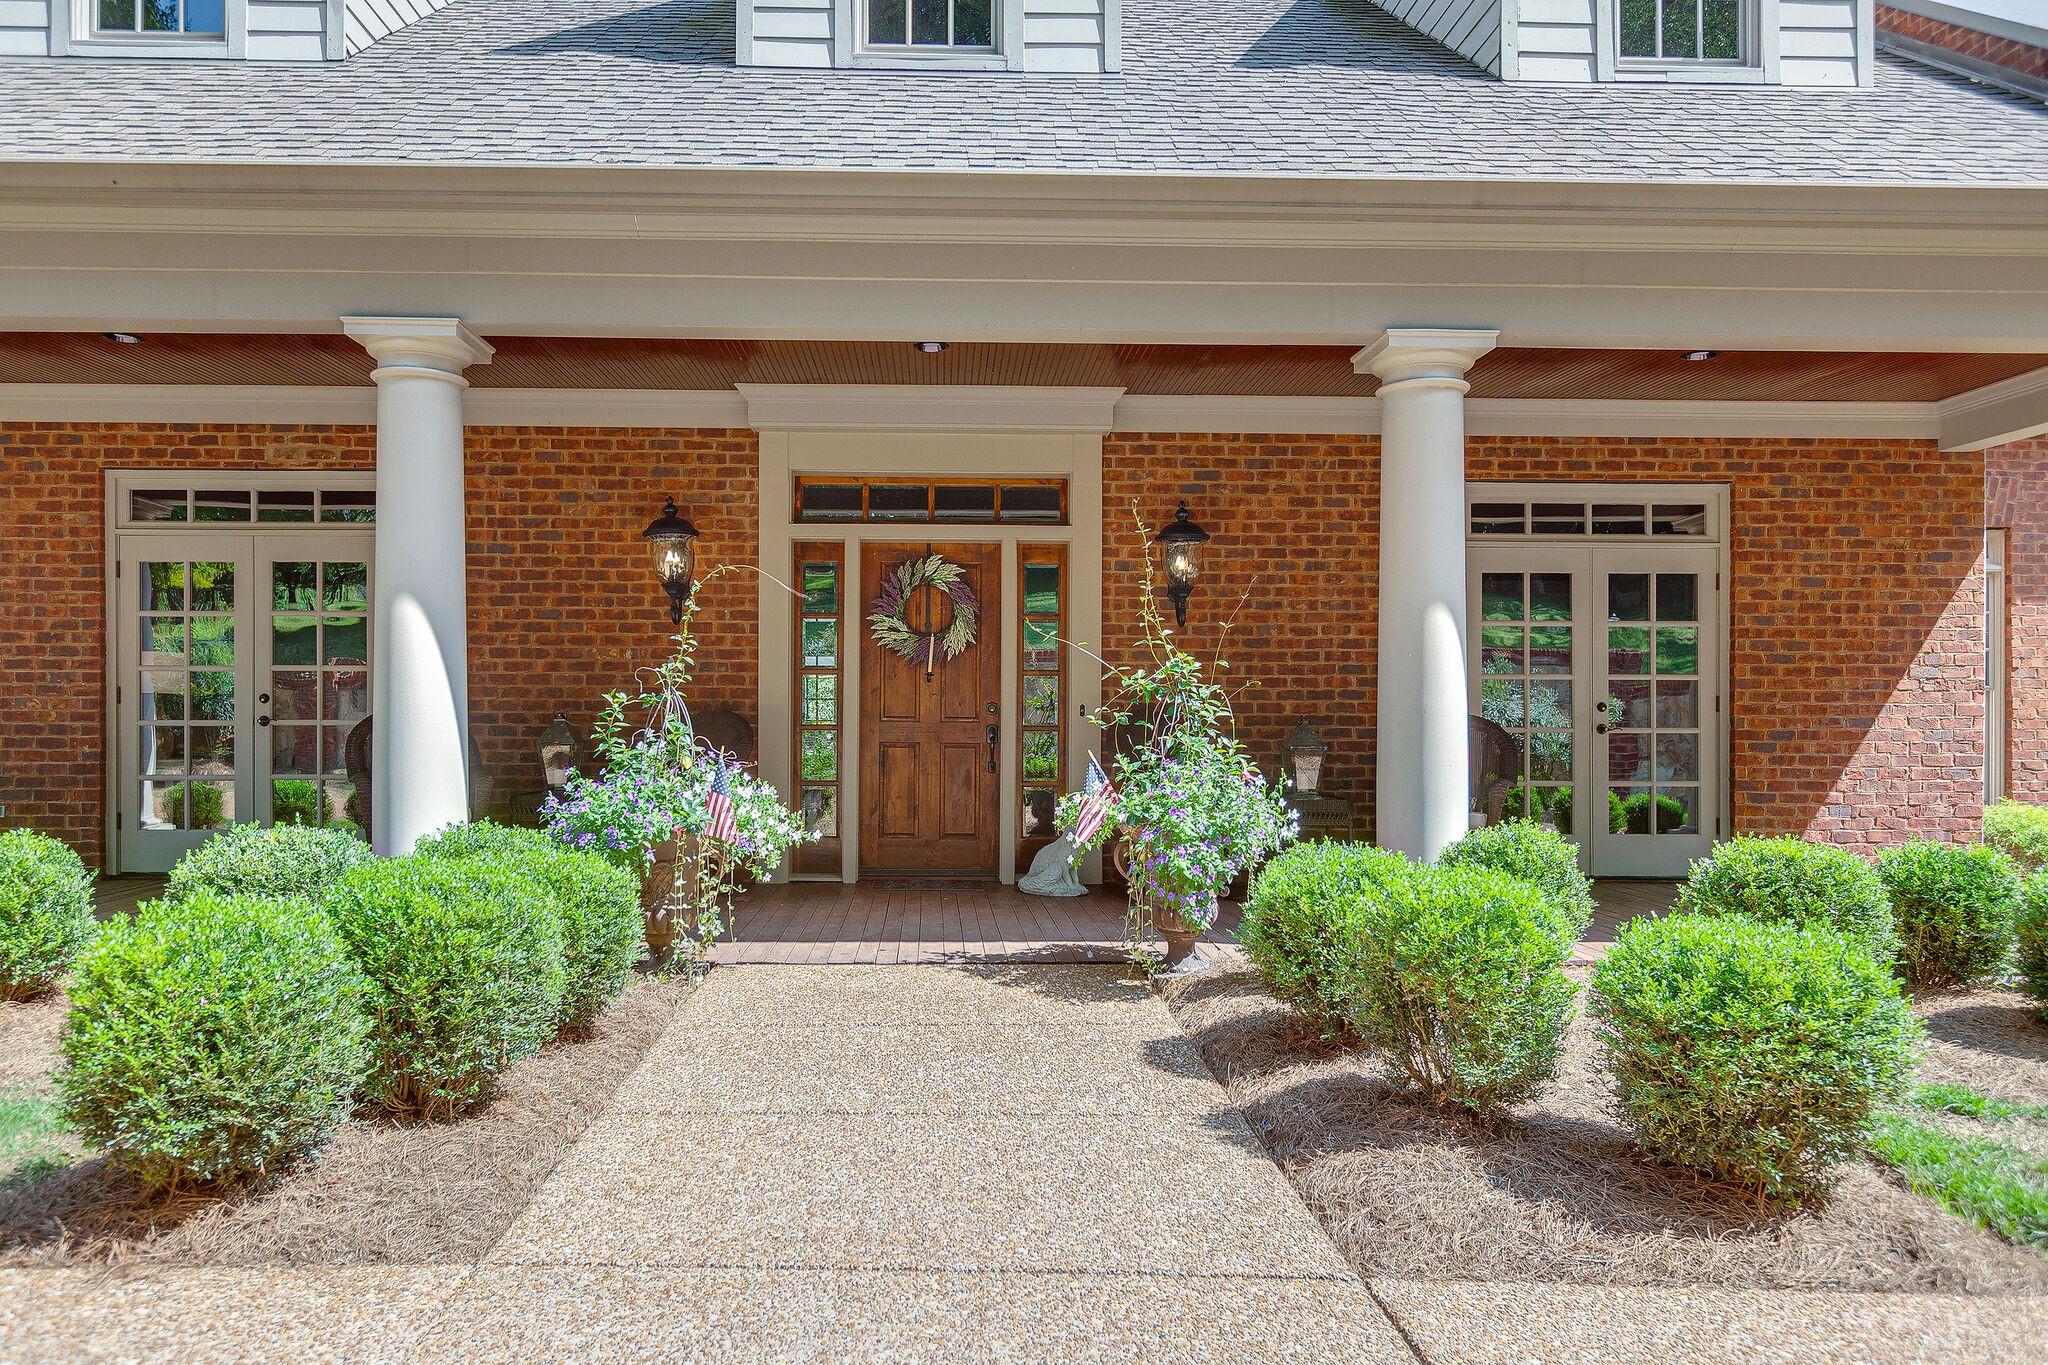 Very Private 3 lot subdivision in Grassland School district. Custom built house that sits on  2.85 acres and was built and designed by an engineer. 5- inch beech floors on the main floor, 2 masters down, beautiful open den and kitchen, both with wood-burning fireplaces, Bedrooms 4 and 5 share a Jack and Jill bath. 4 car garage and a rocking chair front porch to sit and watch all the wildlife. 2600 unfinished walkout basement. 1st showing 10/21/20, at 1:00.